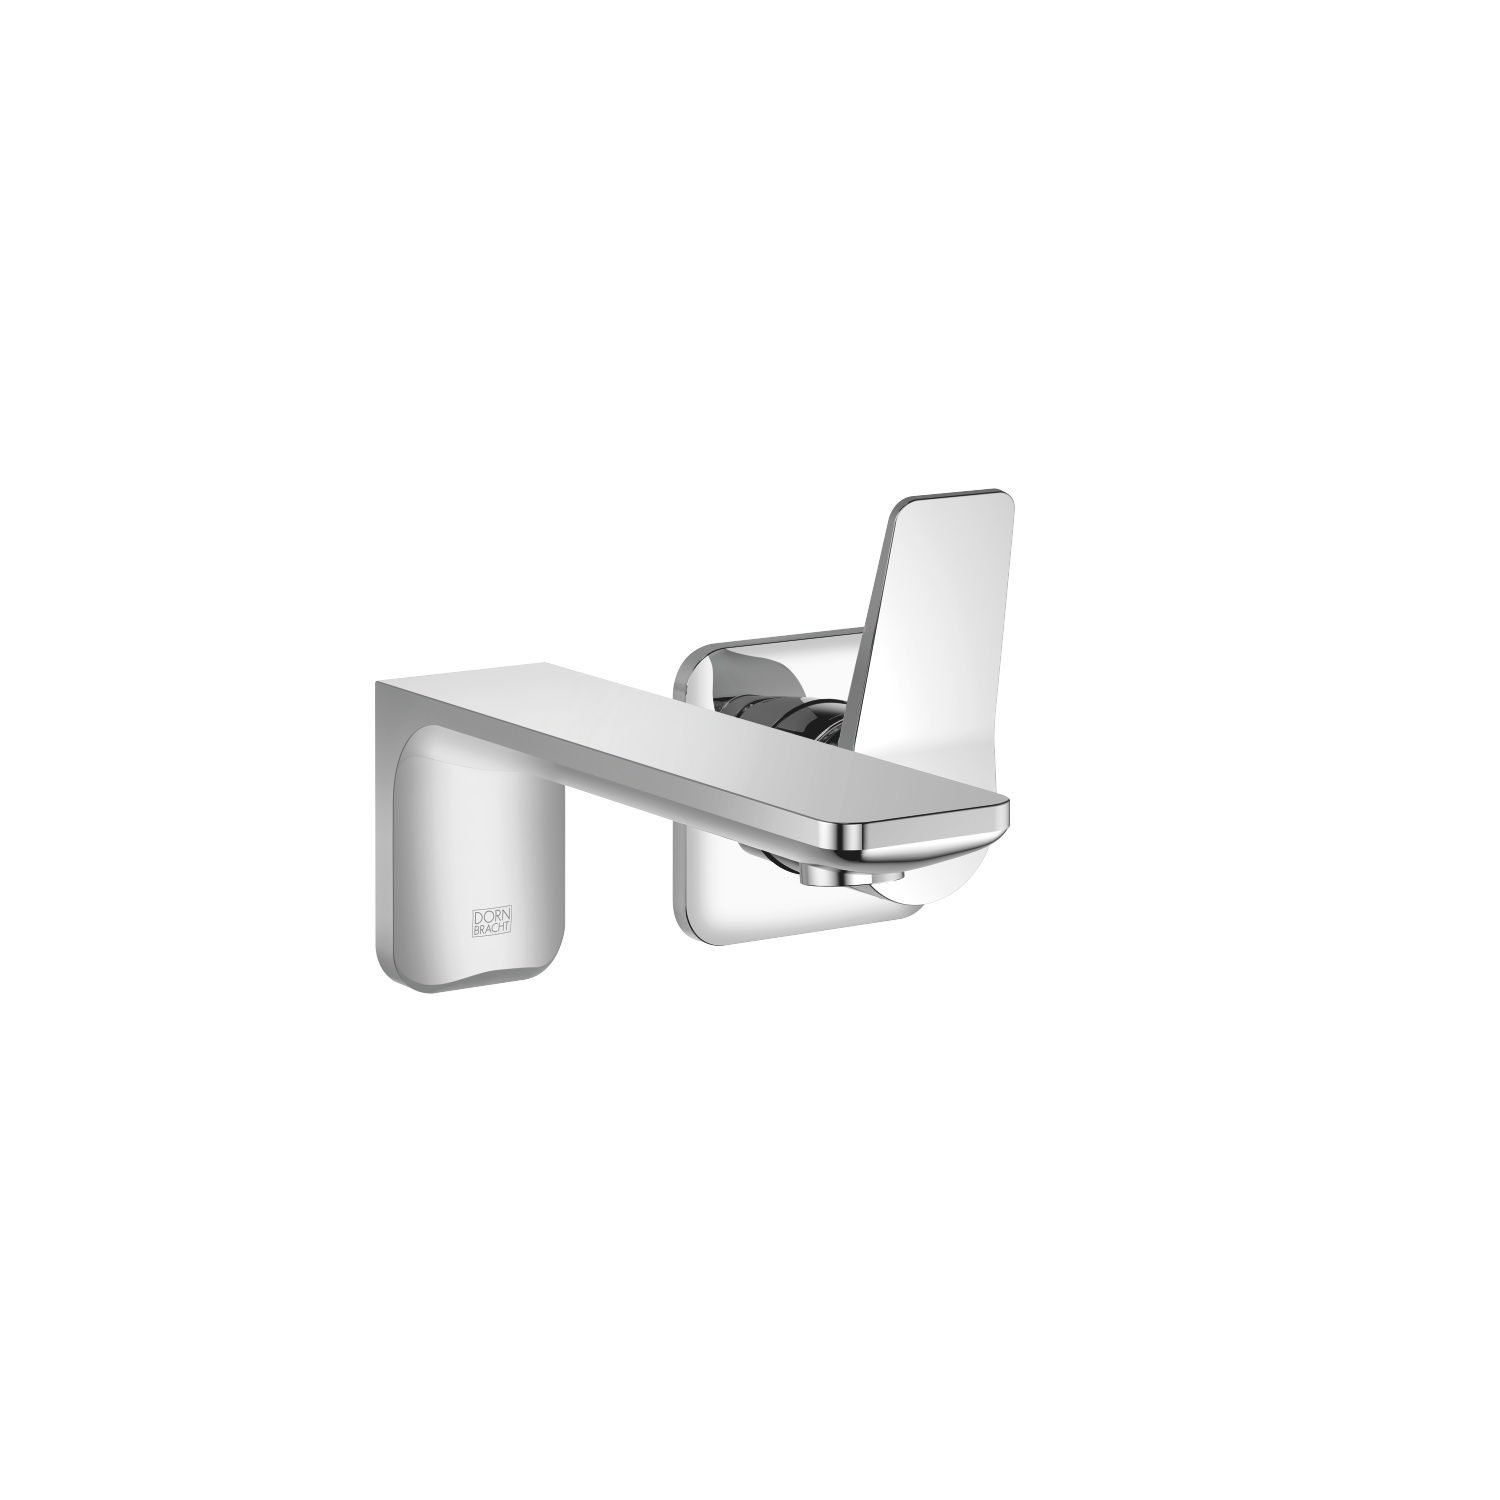 Wall-mounted single-lever mixer without drain - polished chrome